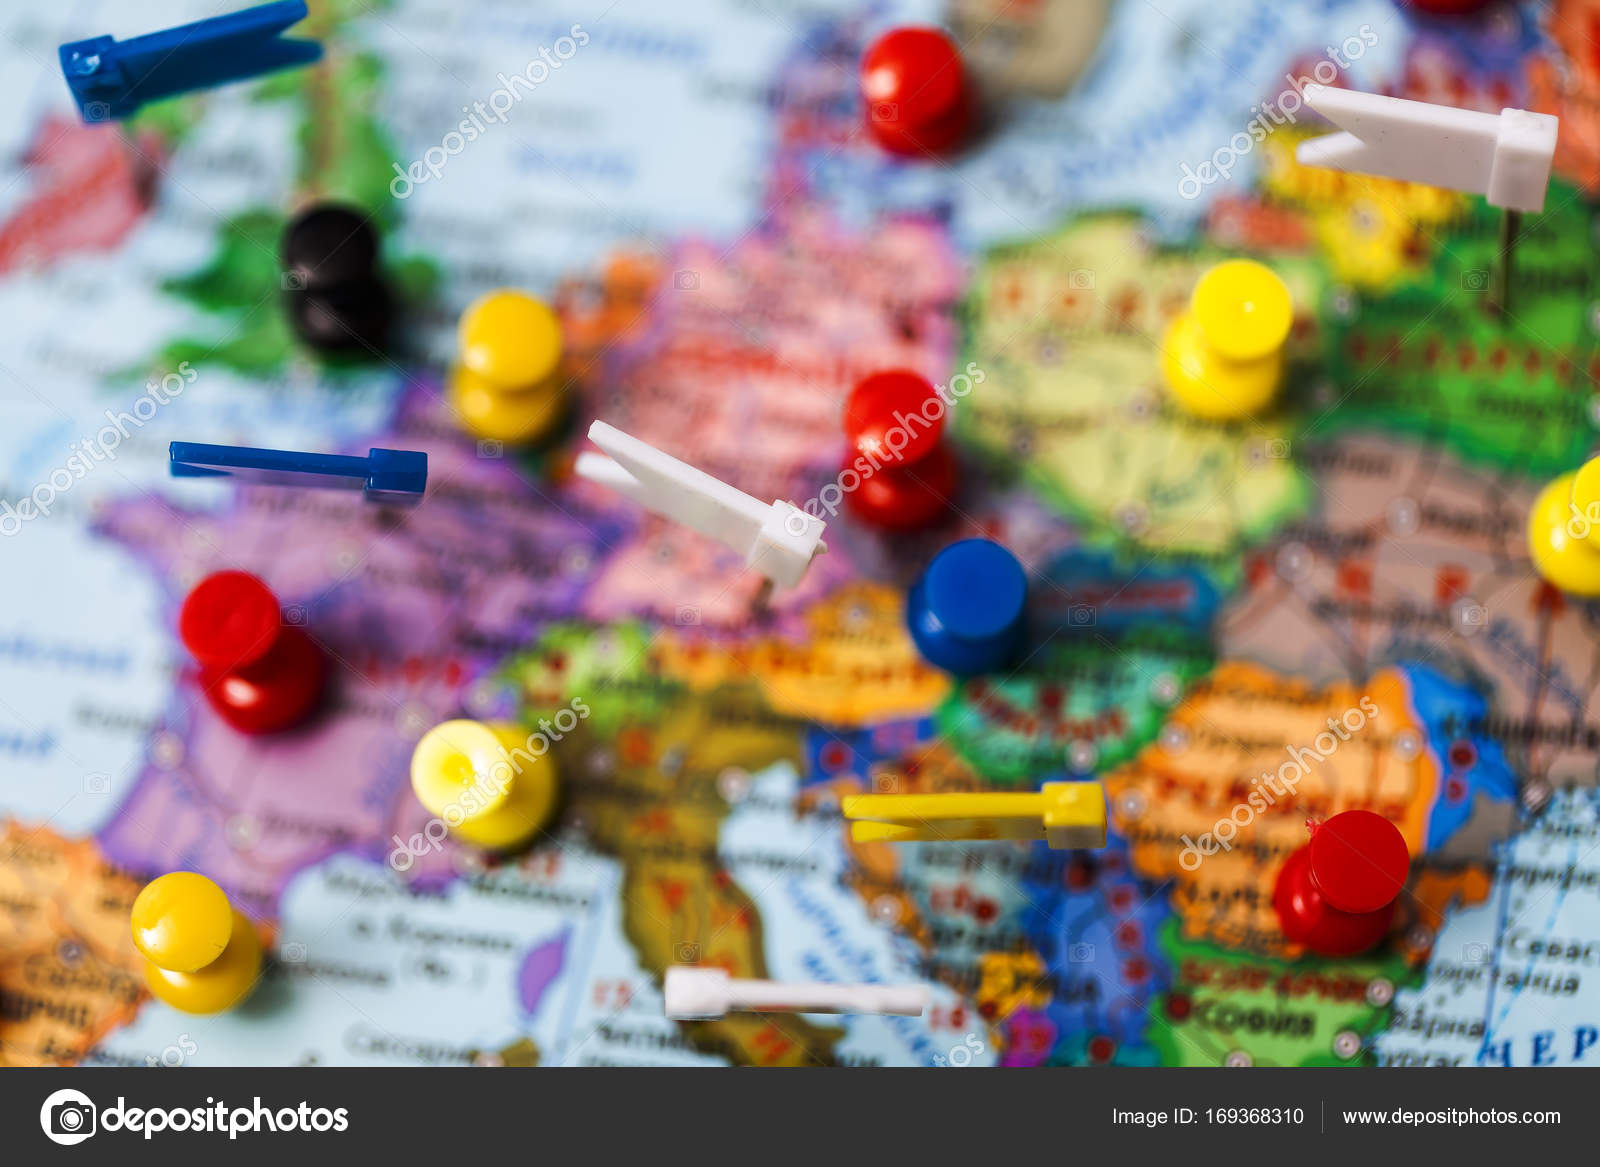 World map country flags marked pin city pinpoint stock photo world map country flags marked pin city pinpoint stock photo gumiabroncs